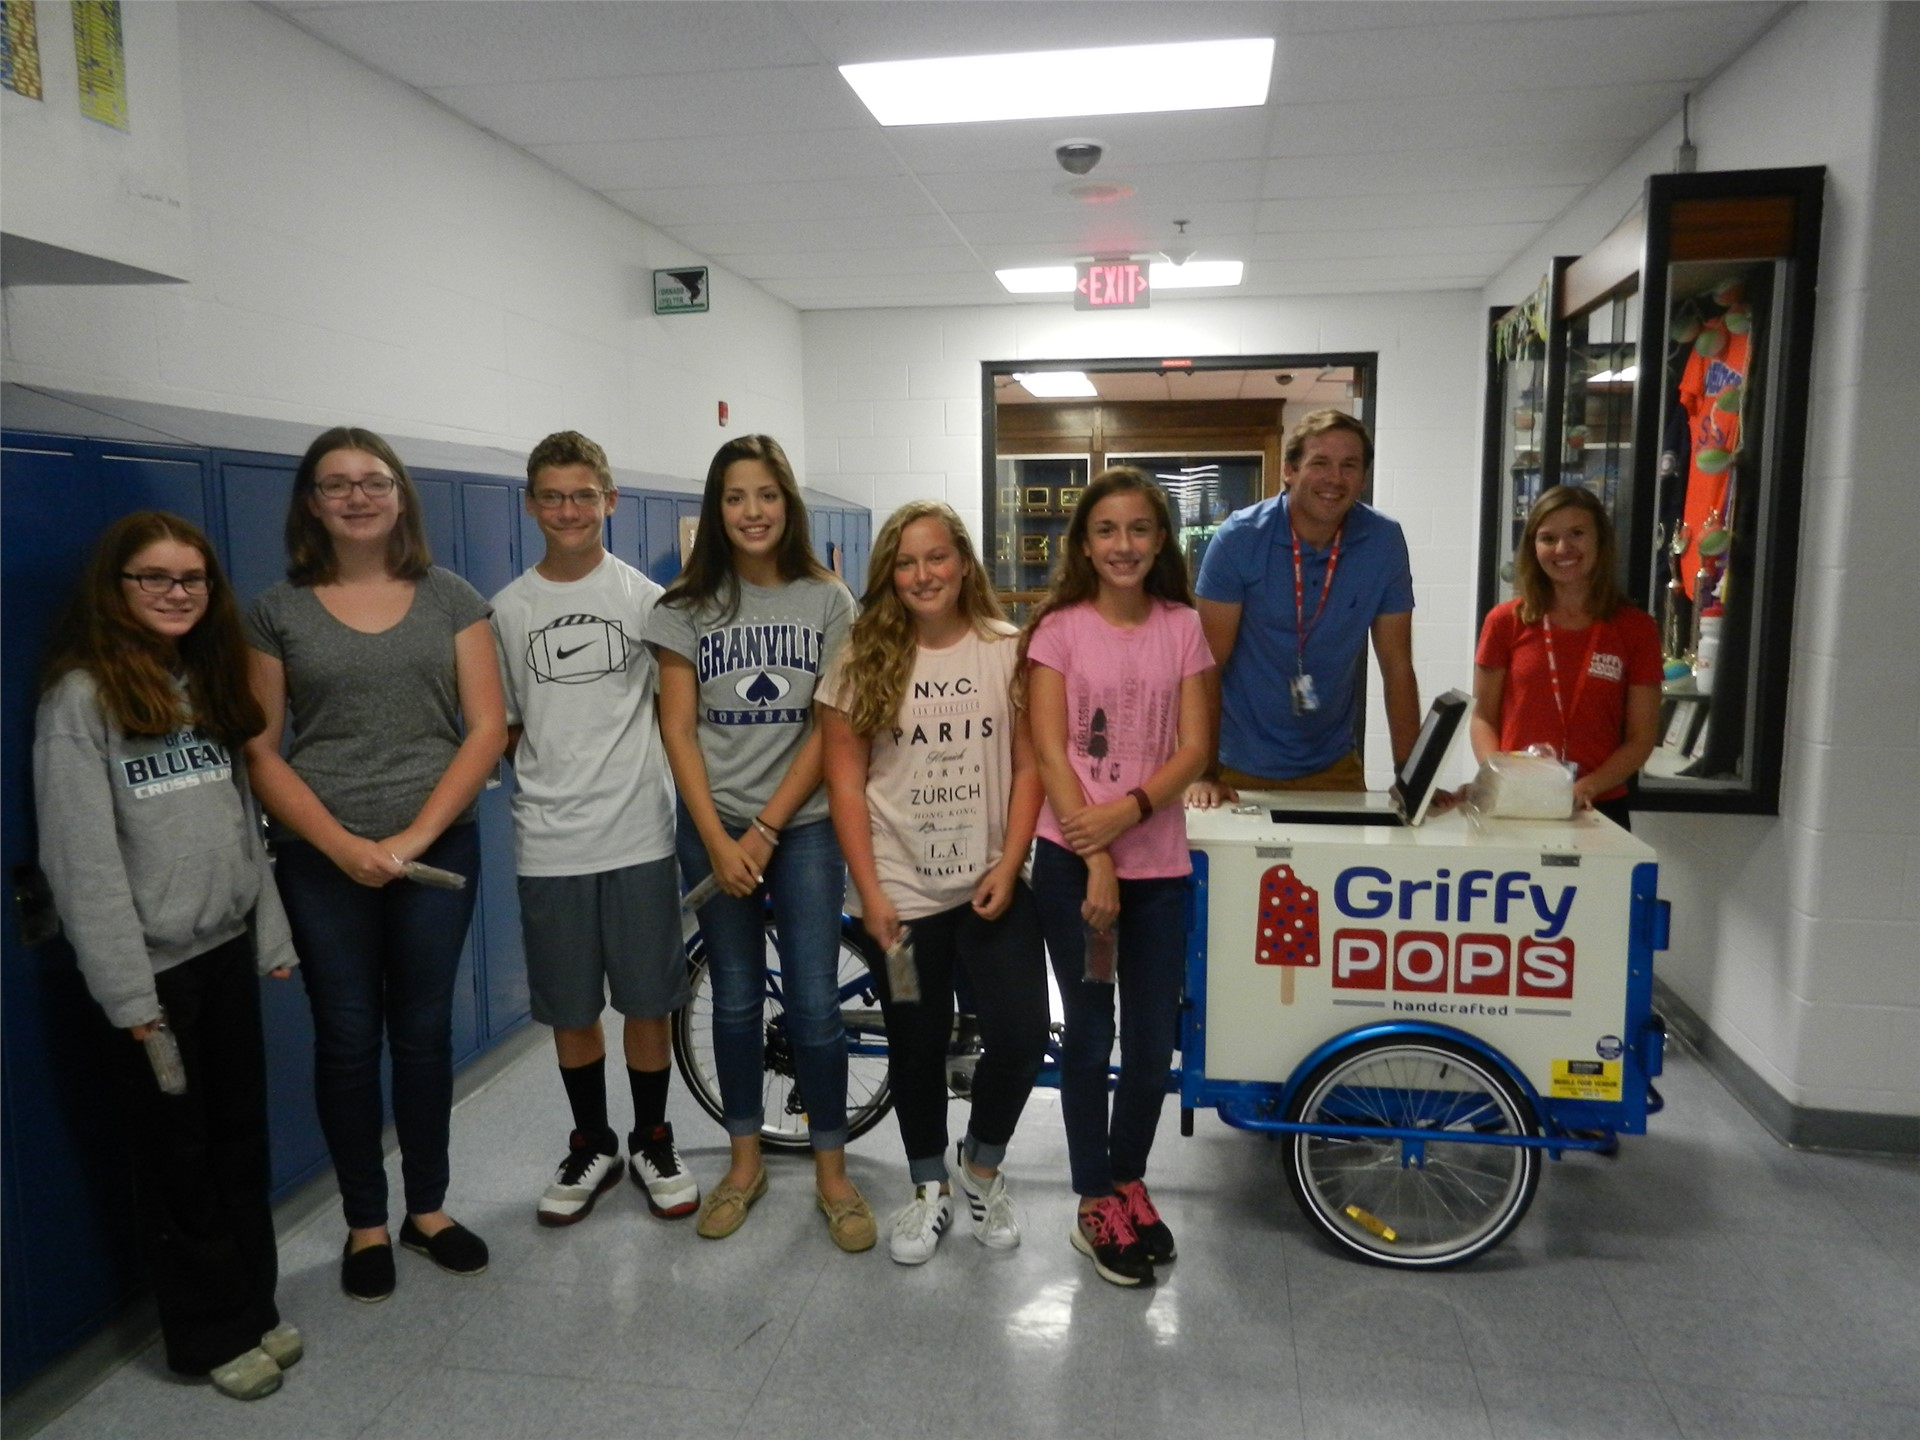 Thanks to Griffy Pops for sharing your story and your popsicles!